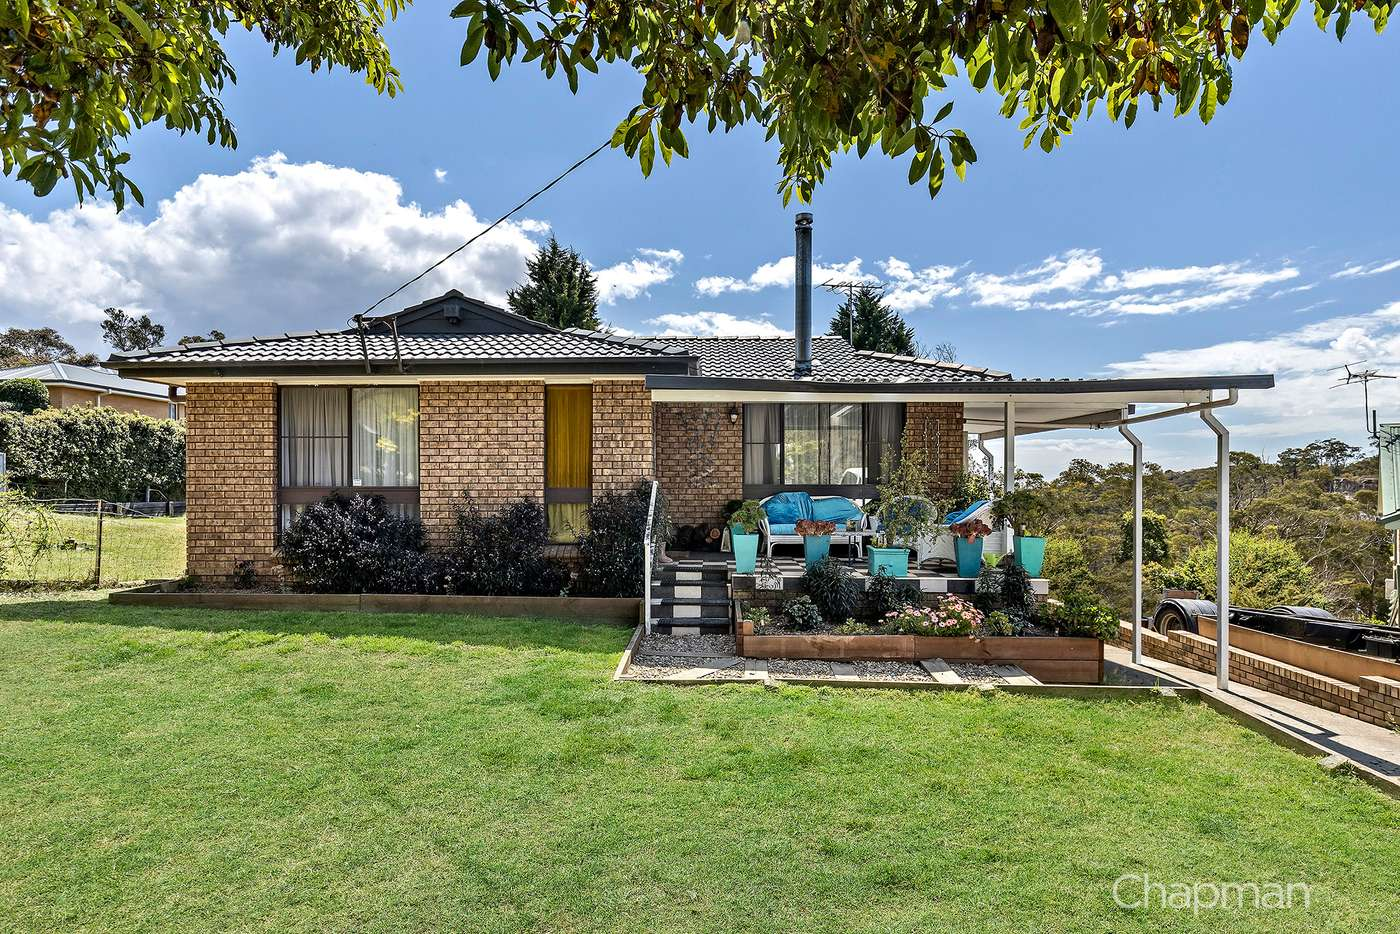 Main view of Homely house listing, 4 Bridge Lane, Woodford NSW 2778